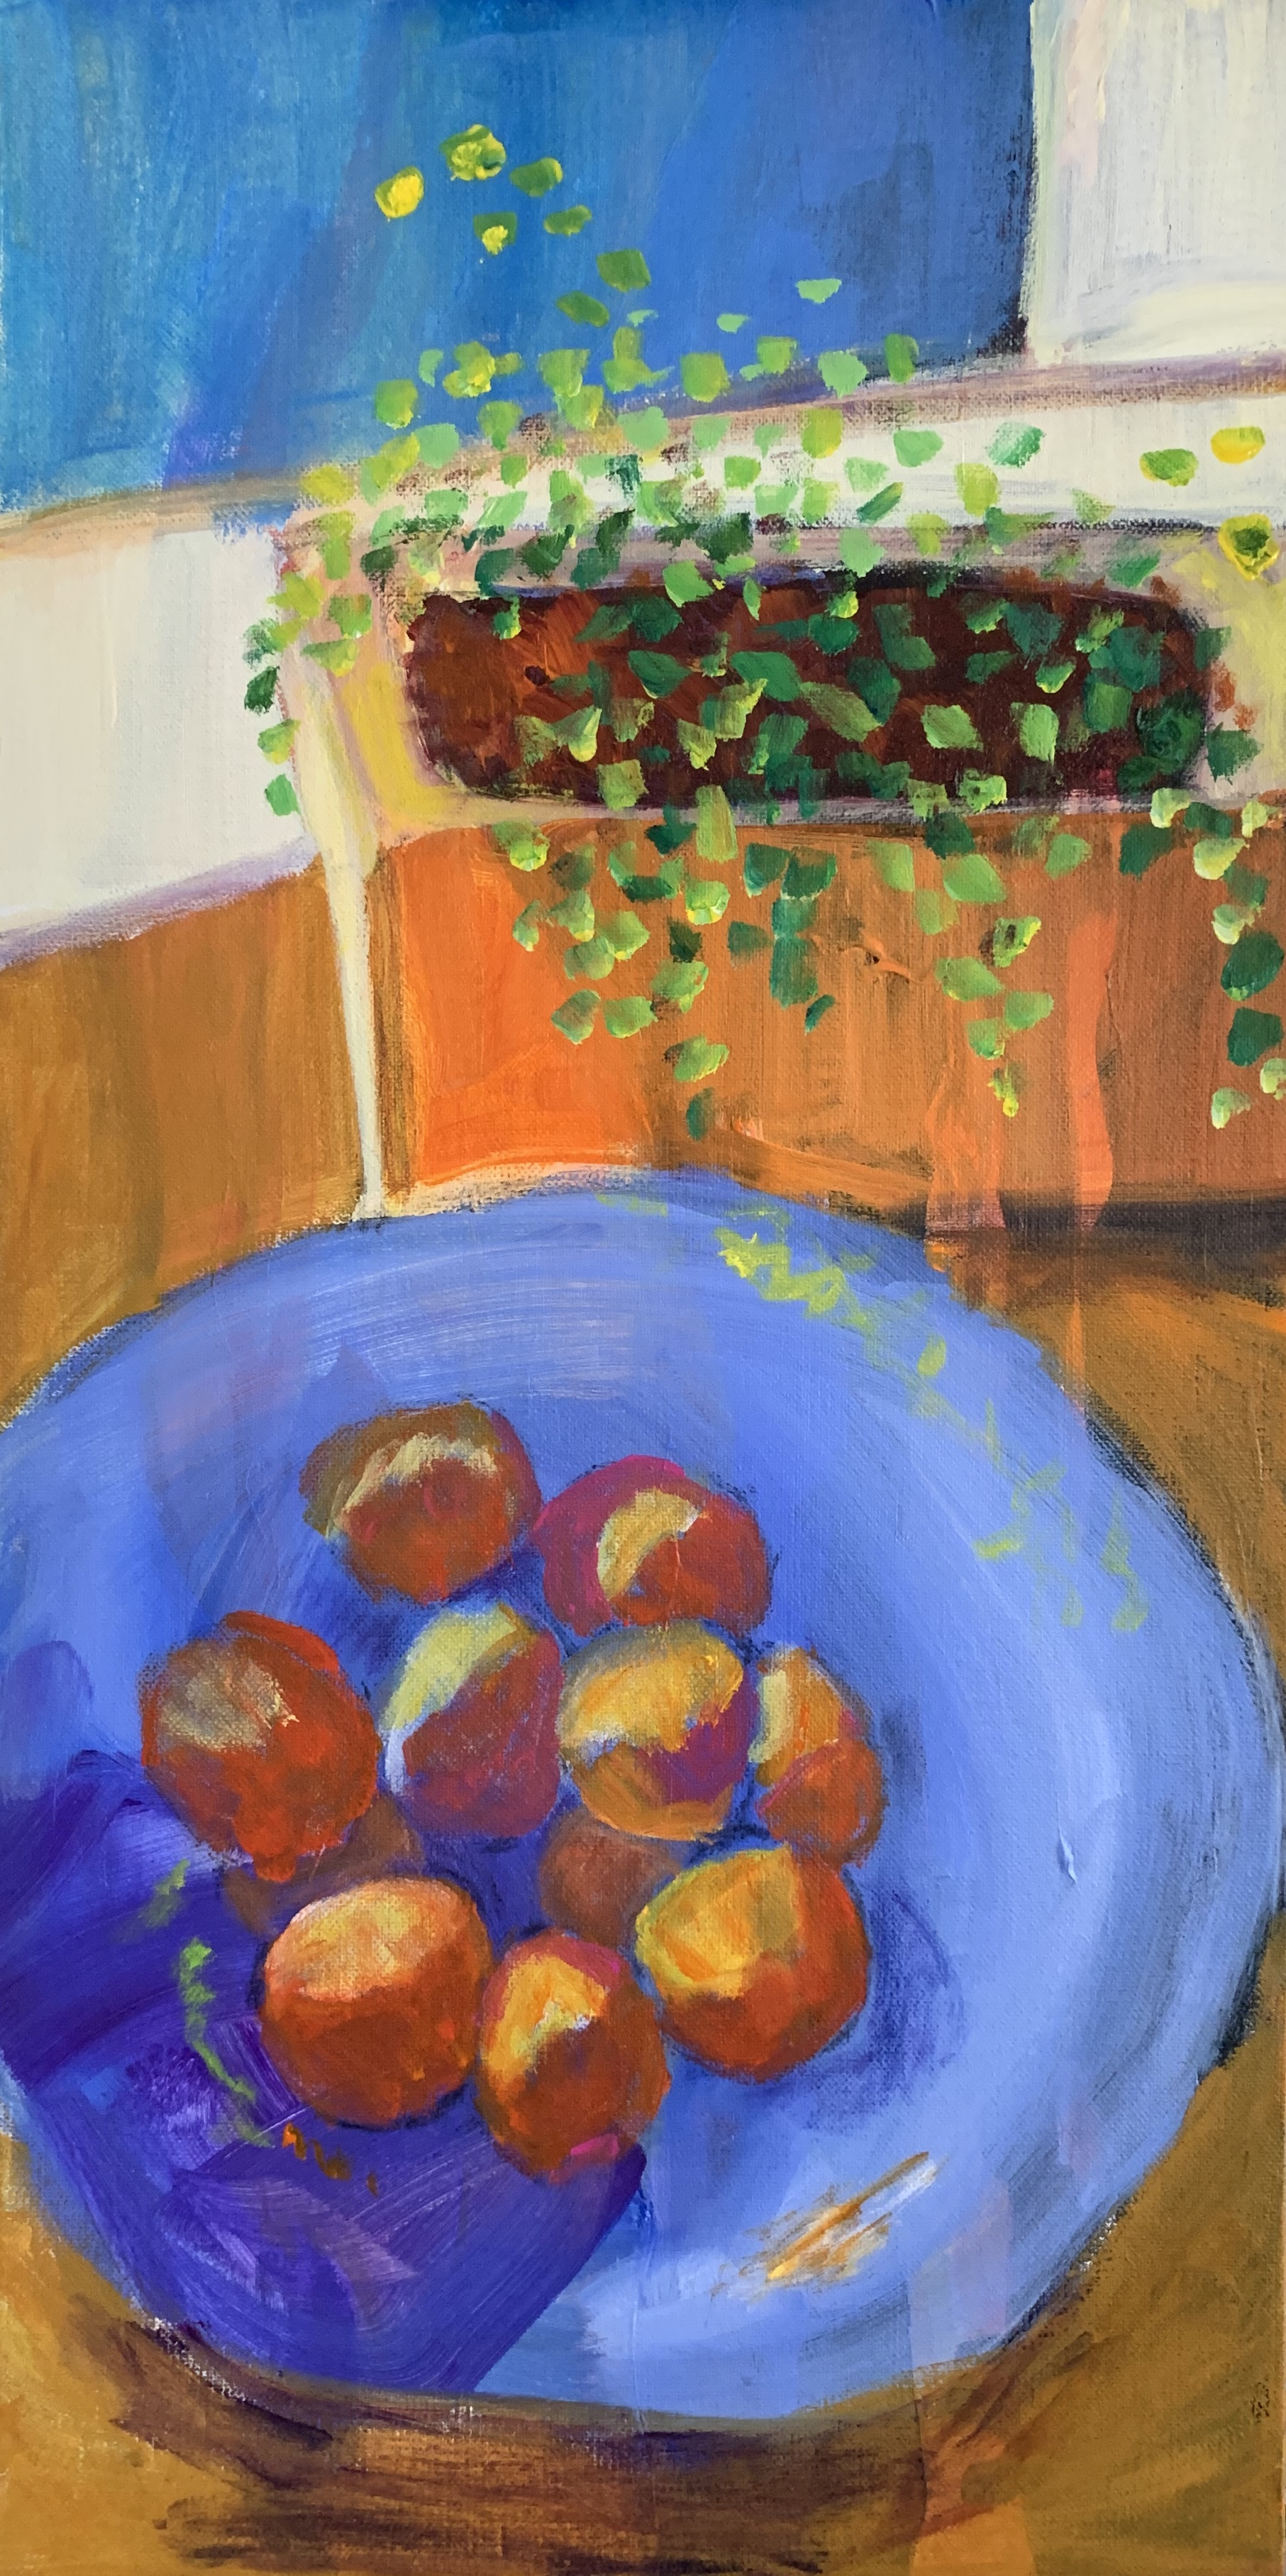 tangerines in blue bowl